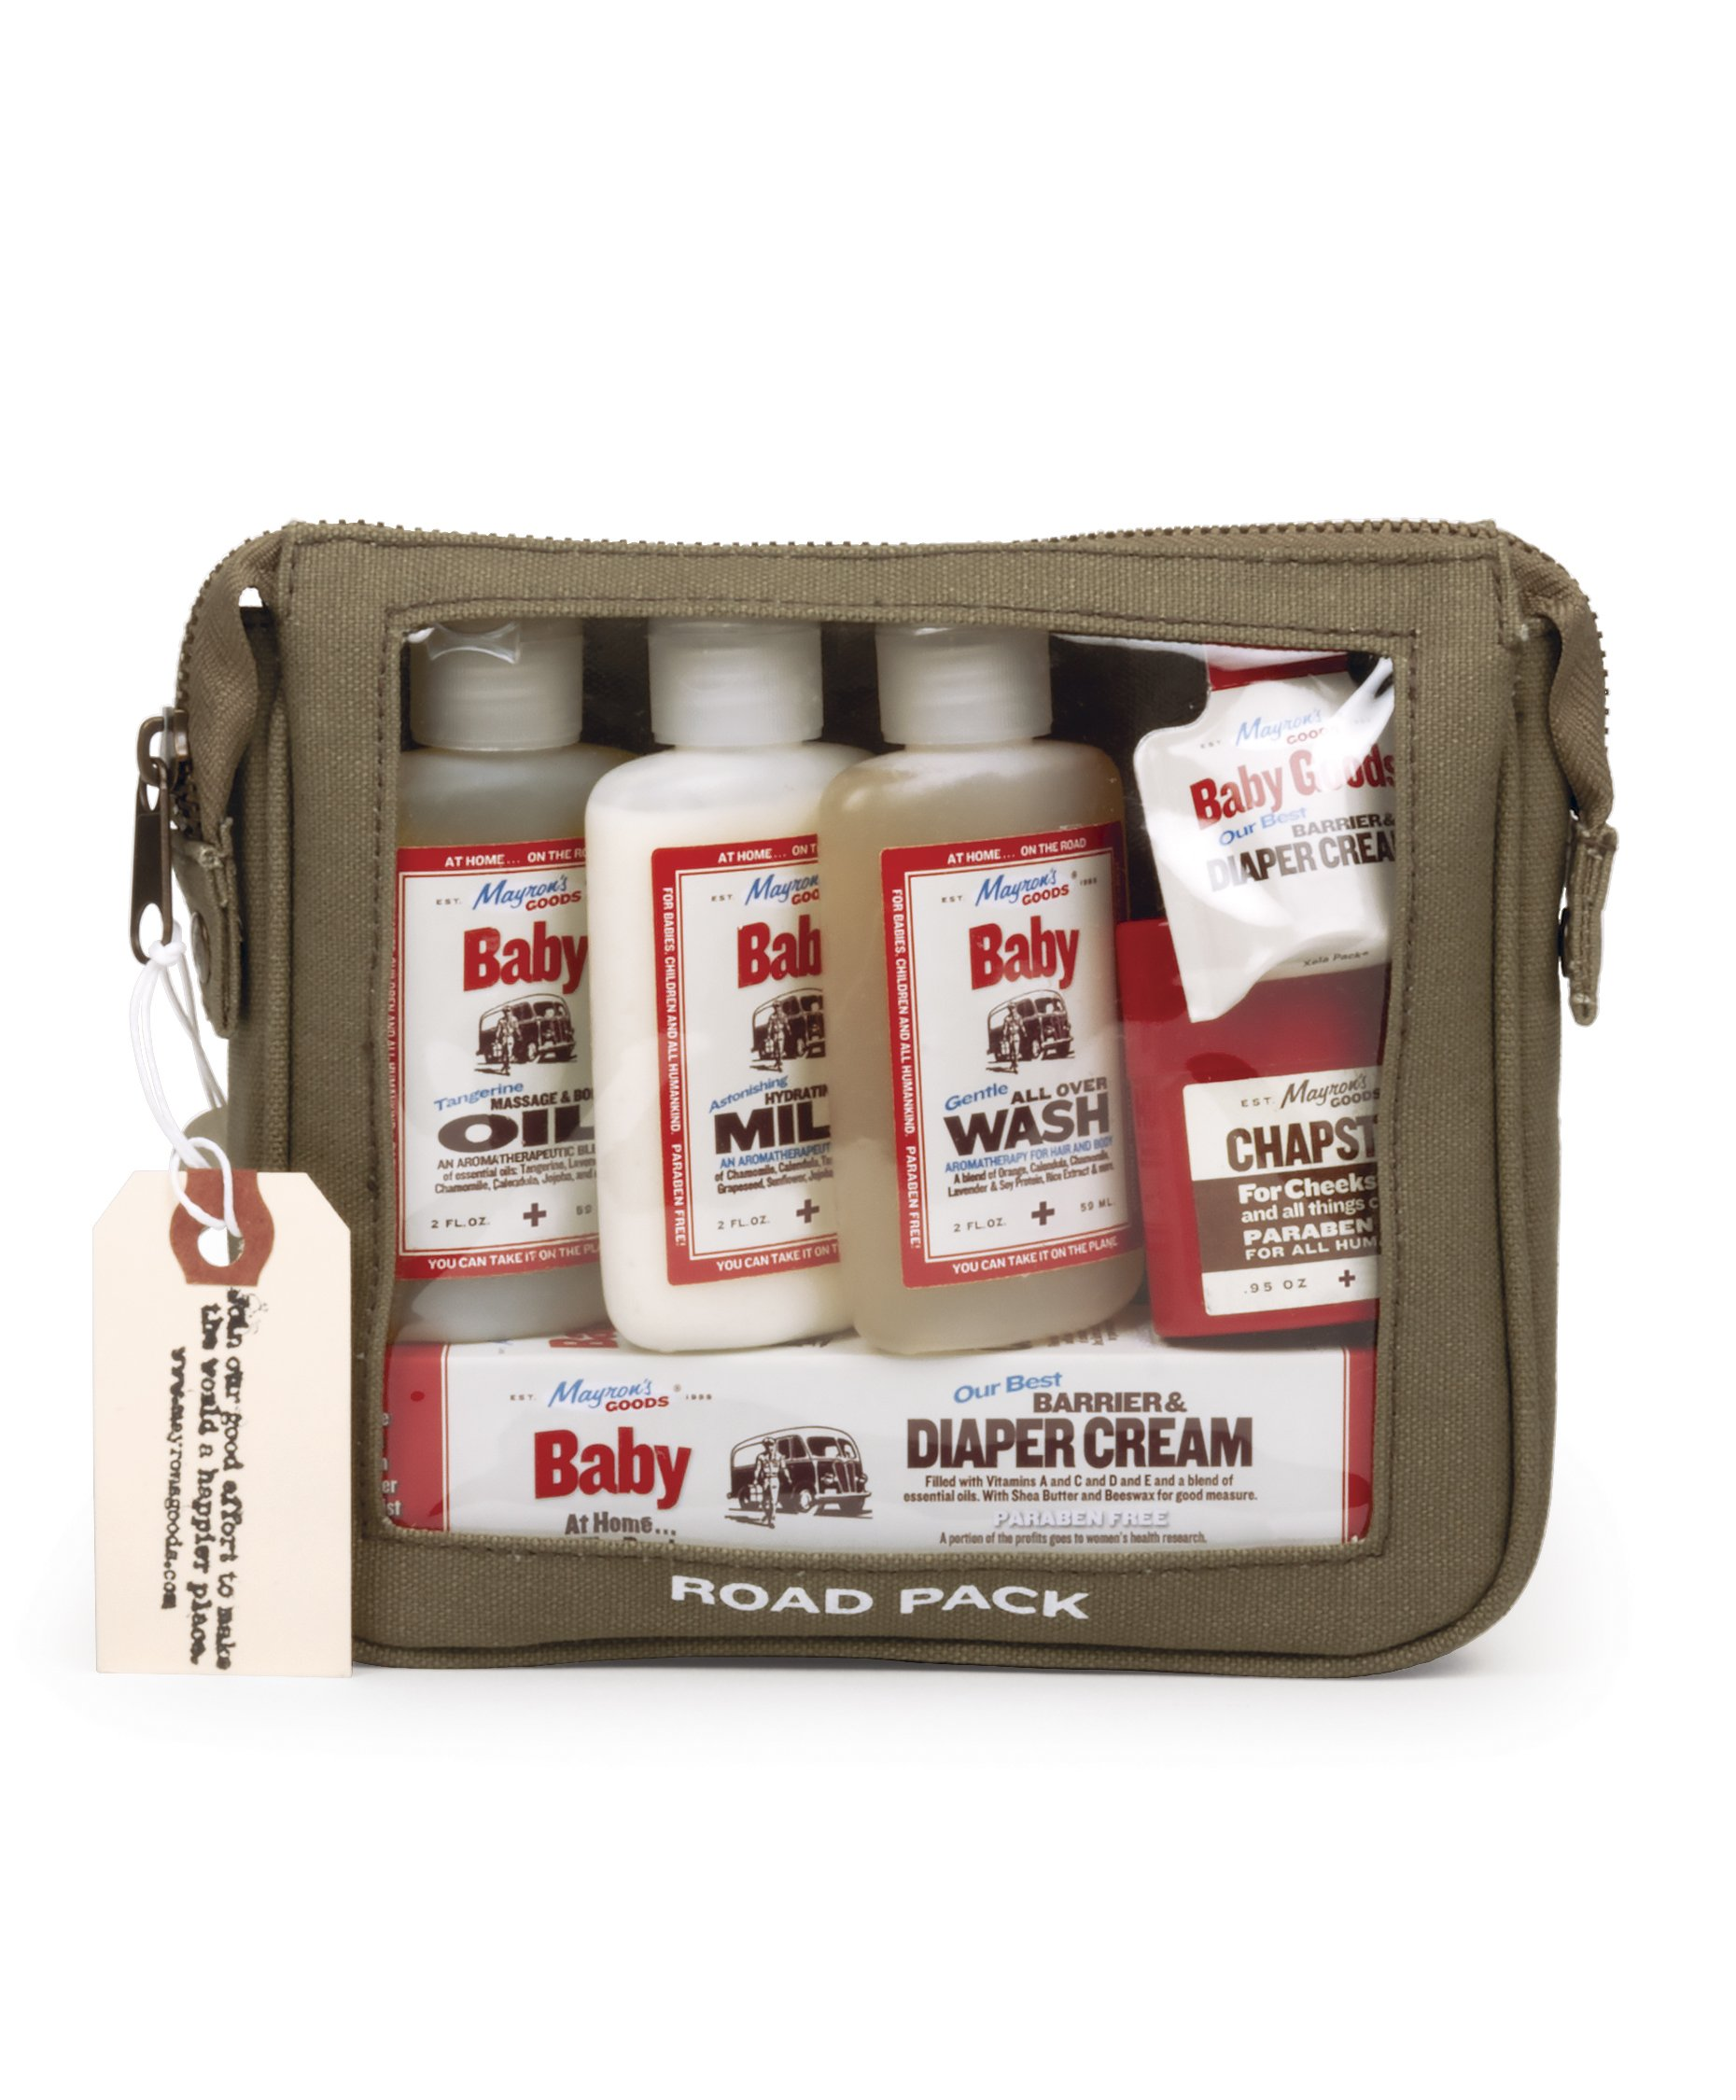 Mayron's Goods Roadpack: Travel Size Baby Goods Natural Skin Care by Baby Goods by Mayron's Goods